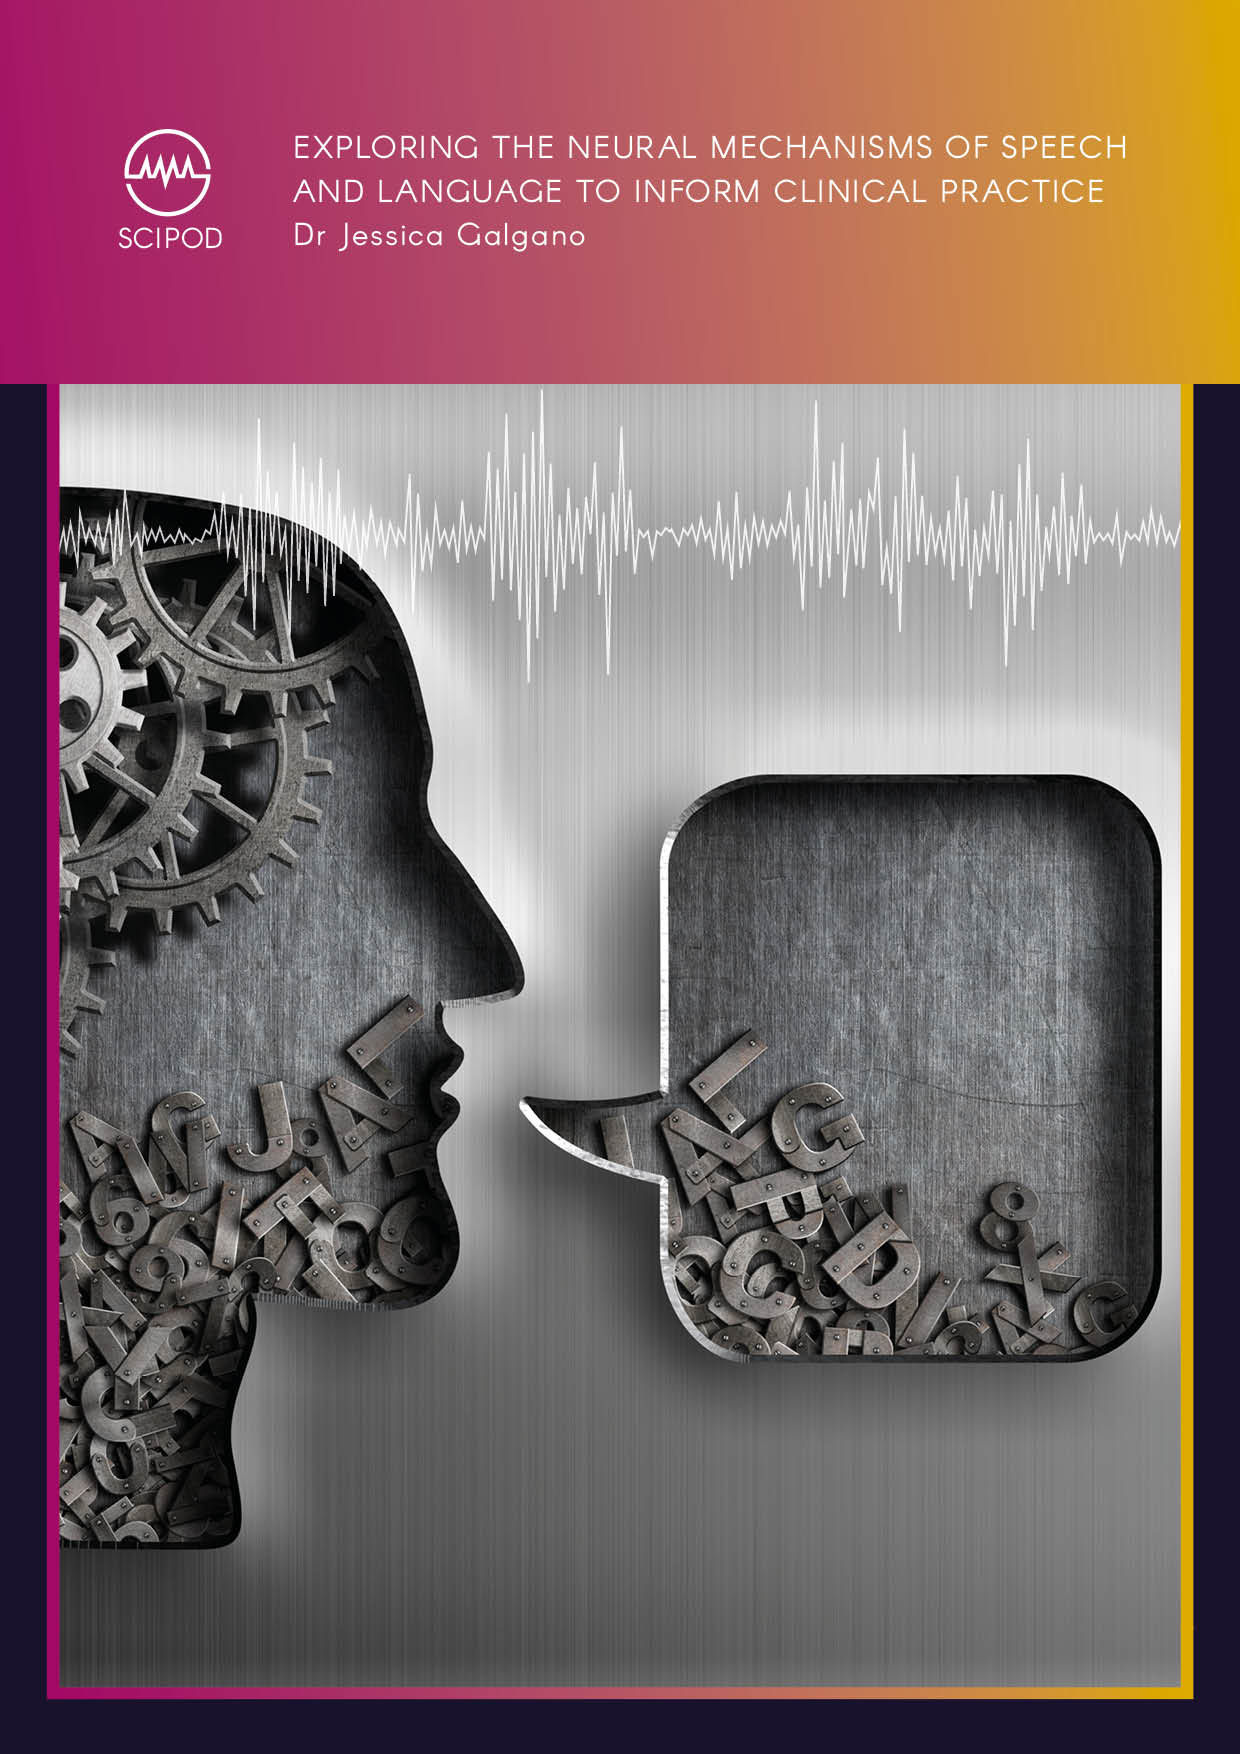 Exploring the Neural Mechanisms of Speech and Language to Inform Clinical Practice – Dr Jessica Galgano, New York University